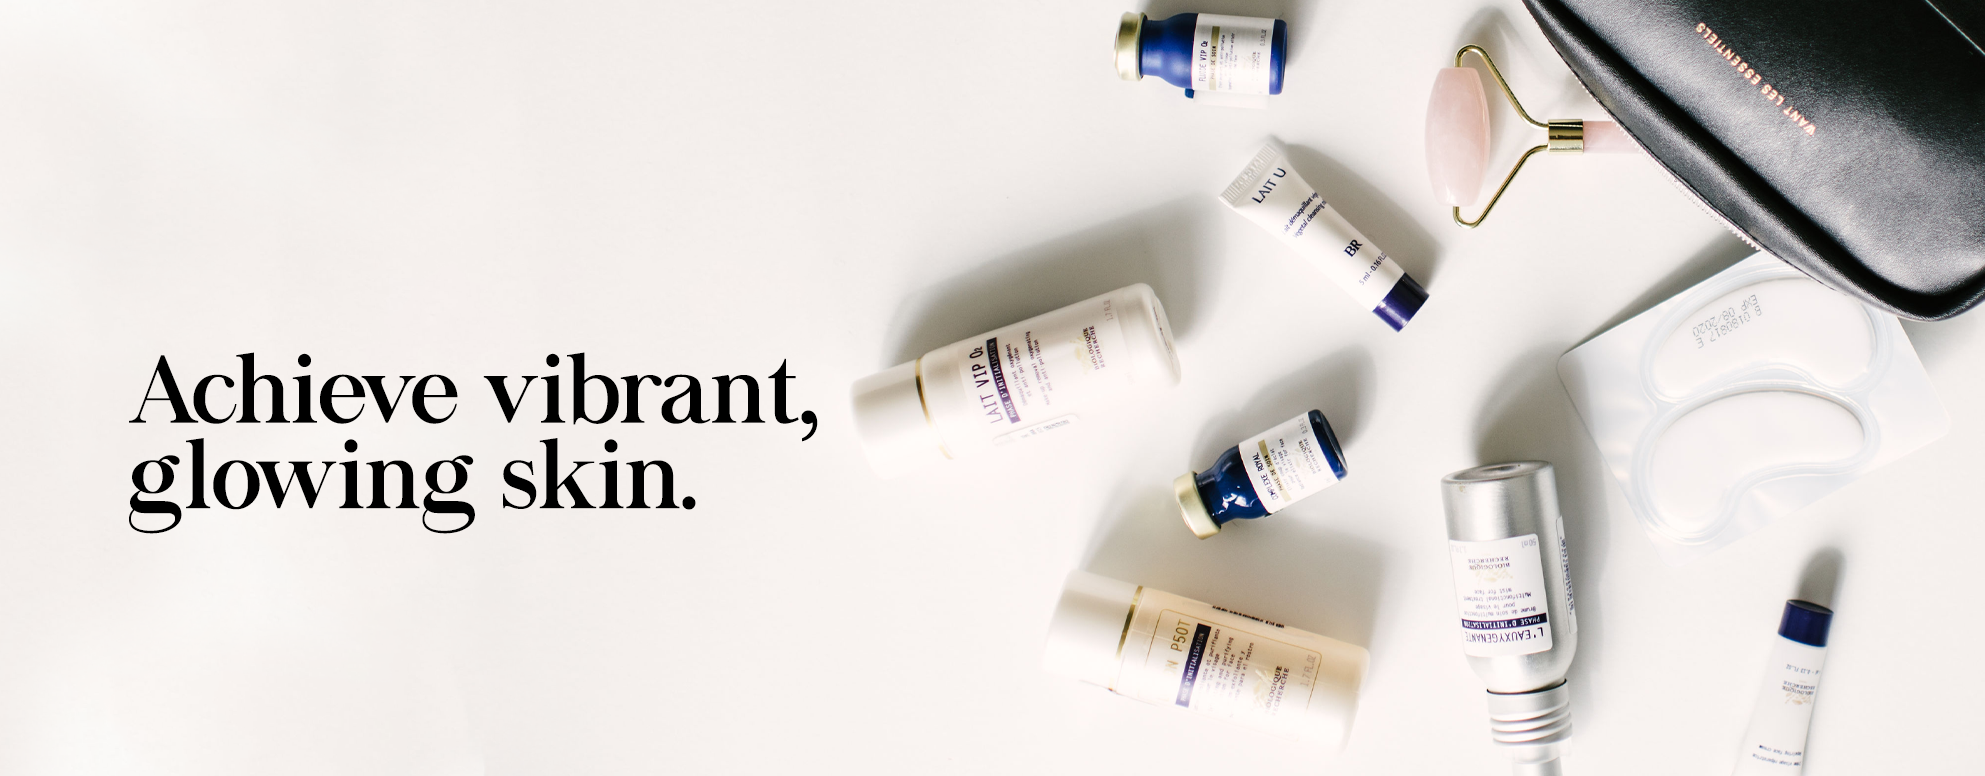 Achieve vibrant, glowing skin.